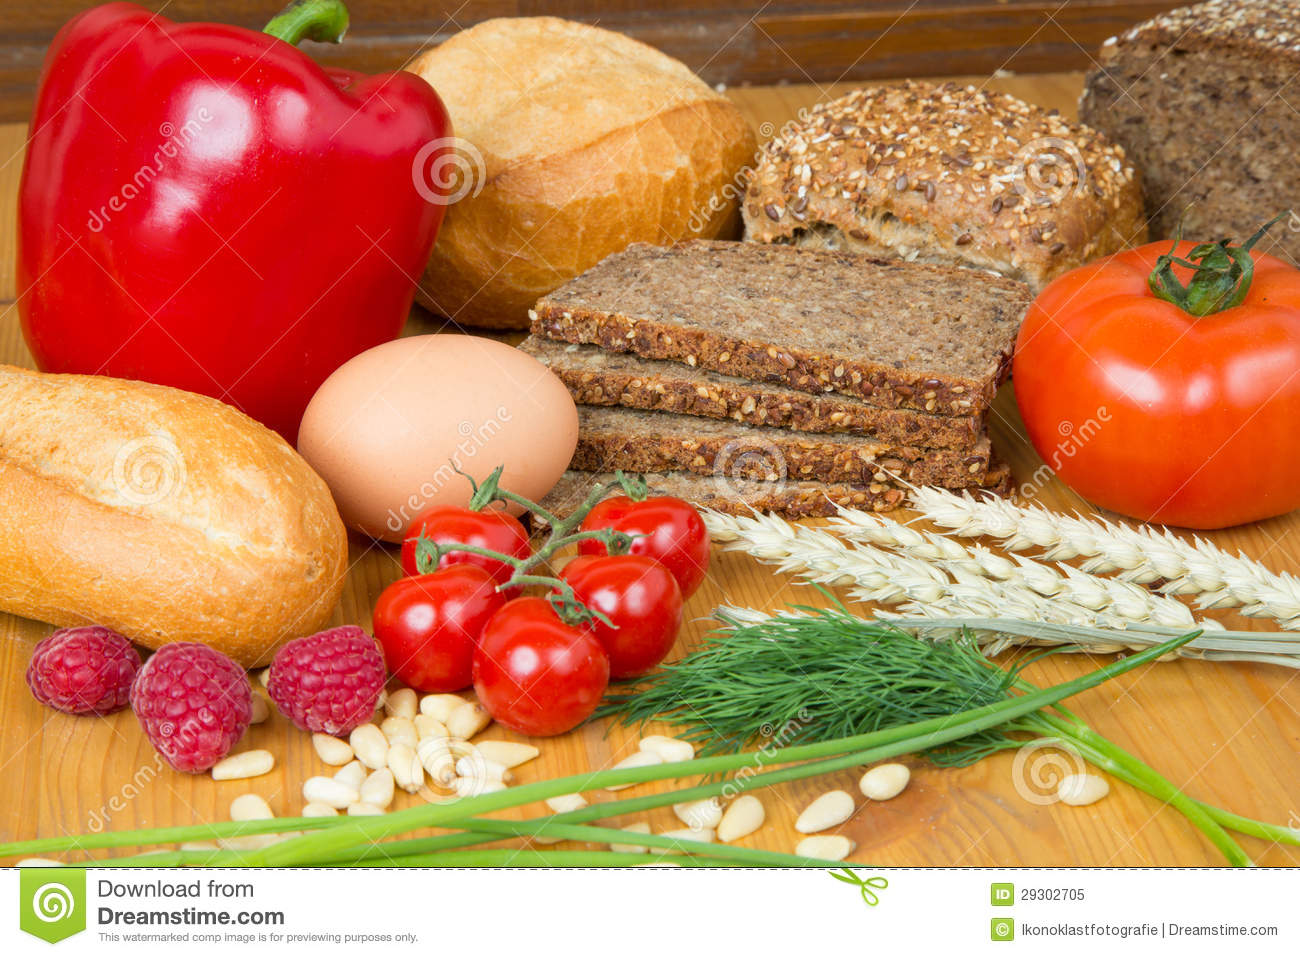 Kitchen Table With Food Kitchen Table With A Lot Of Food Like Bread And Vegetables Royalty